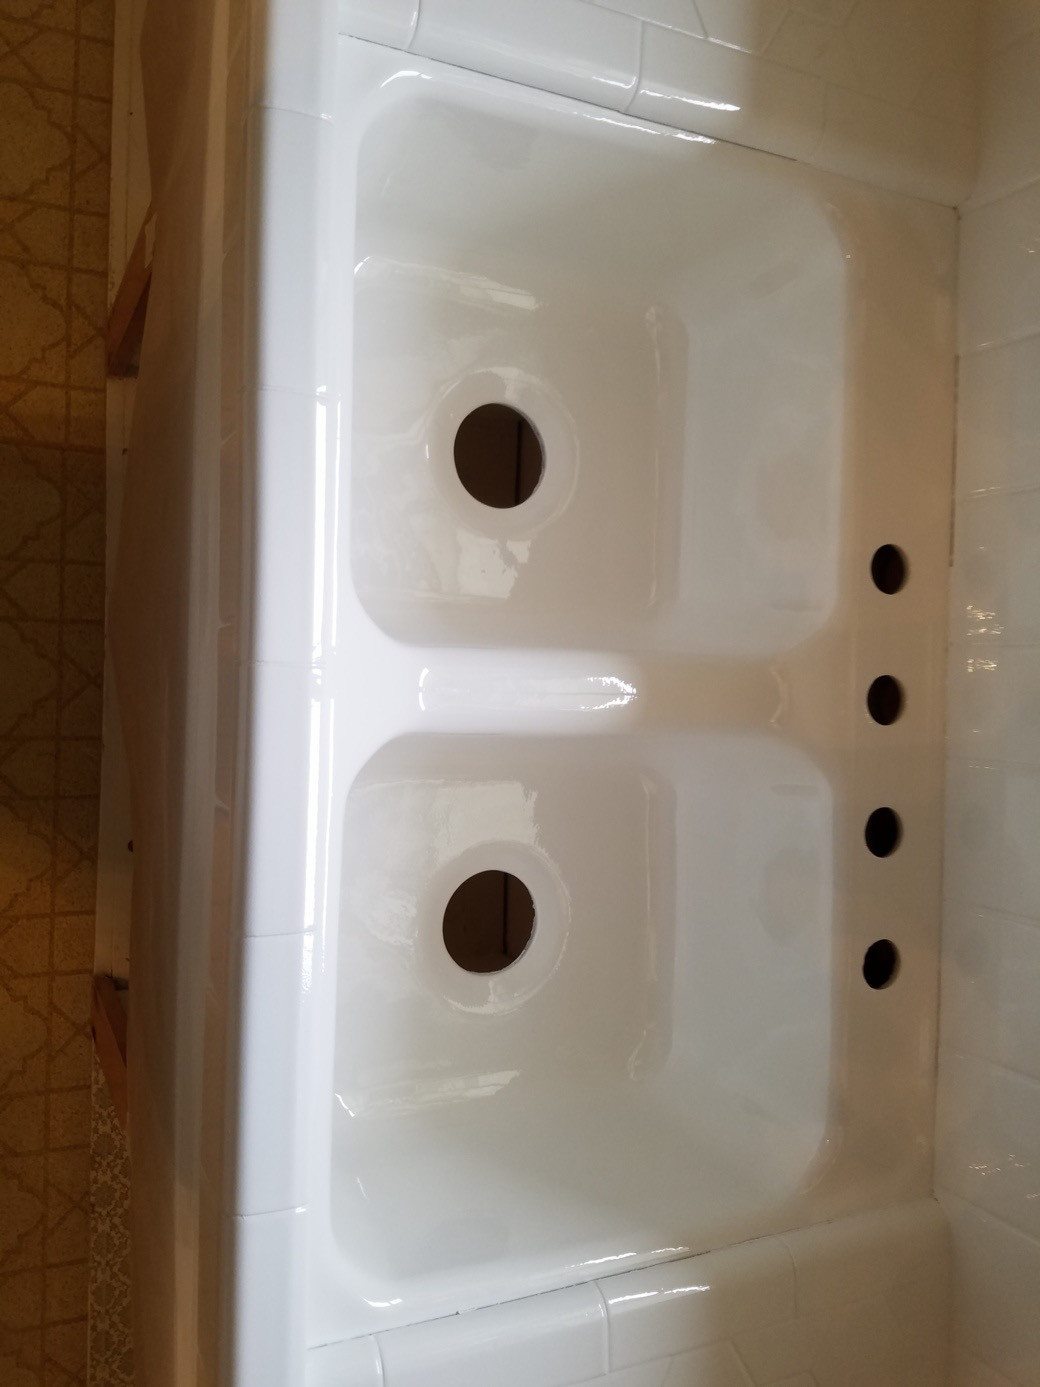 Bathroom Sink In Liquid Porcelain